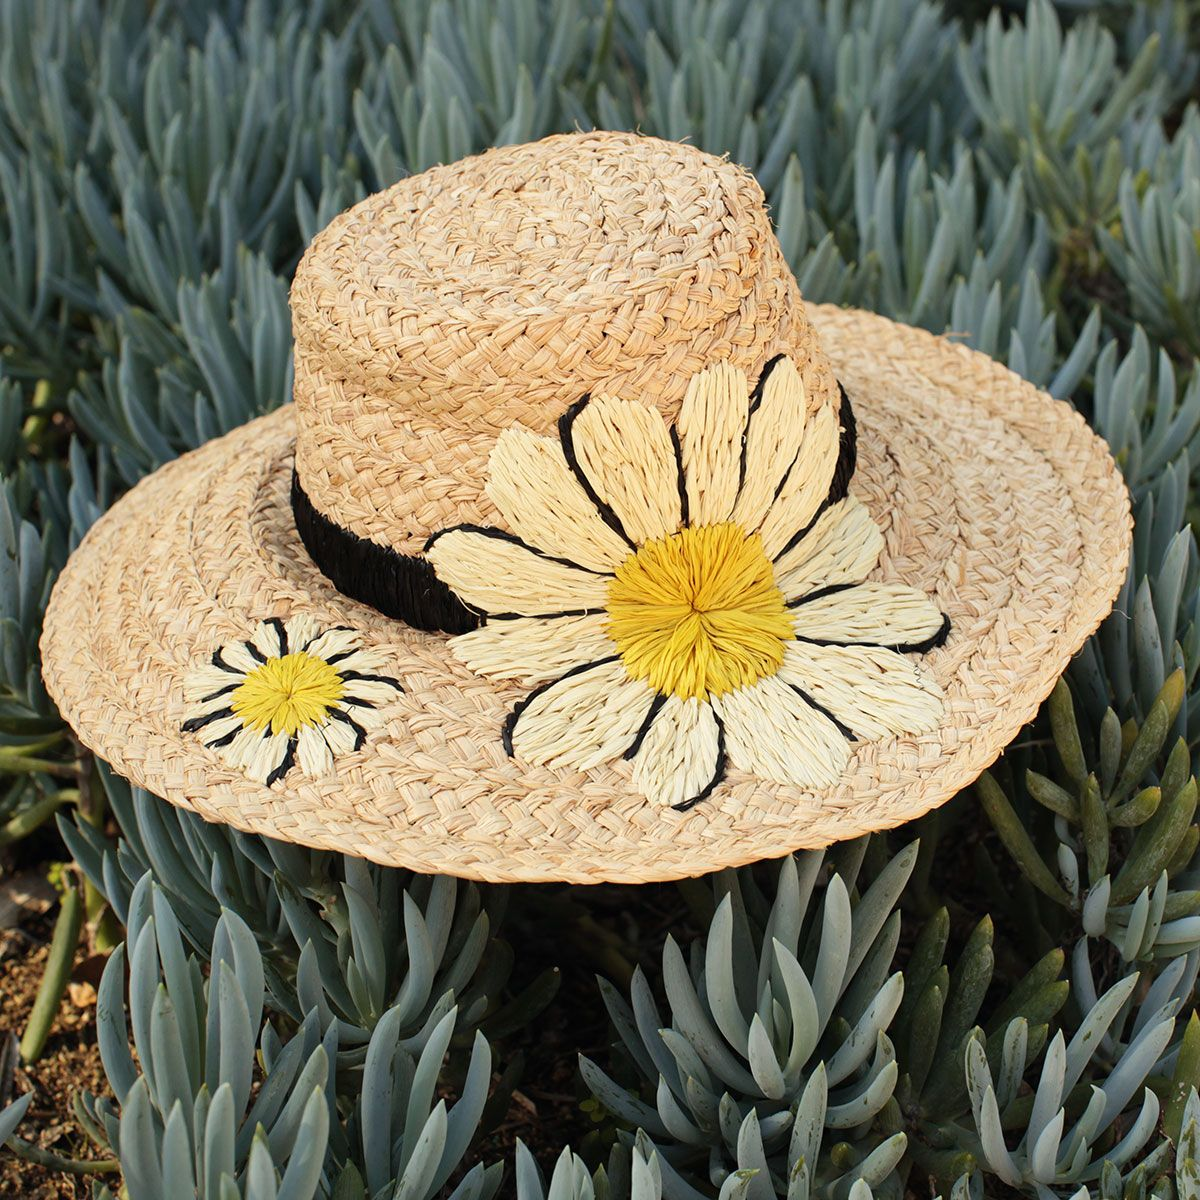 """#missadventure season 2, episode 1, """"the perfect weekend"""" featuring the embroidered daisy sunhat."""